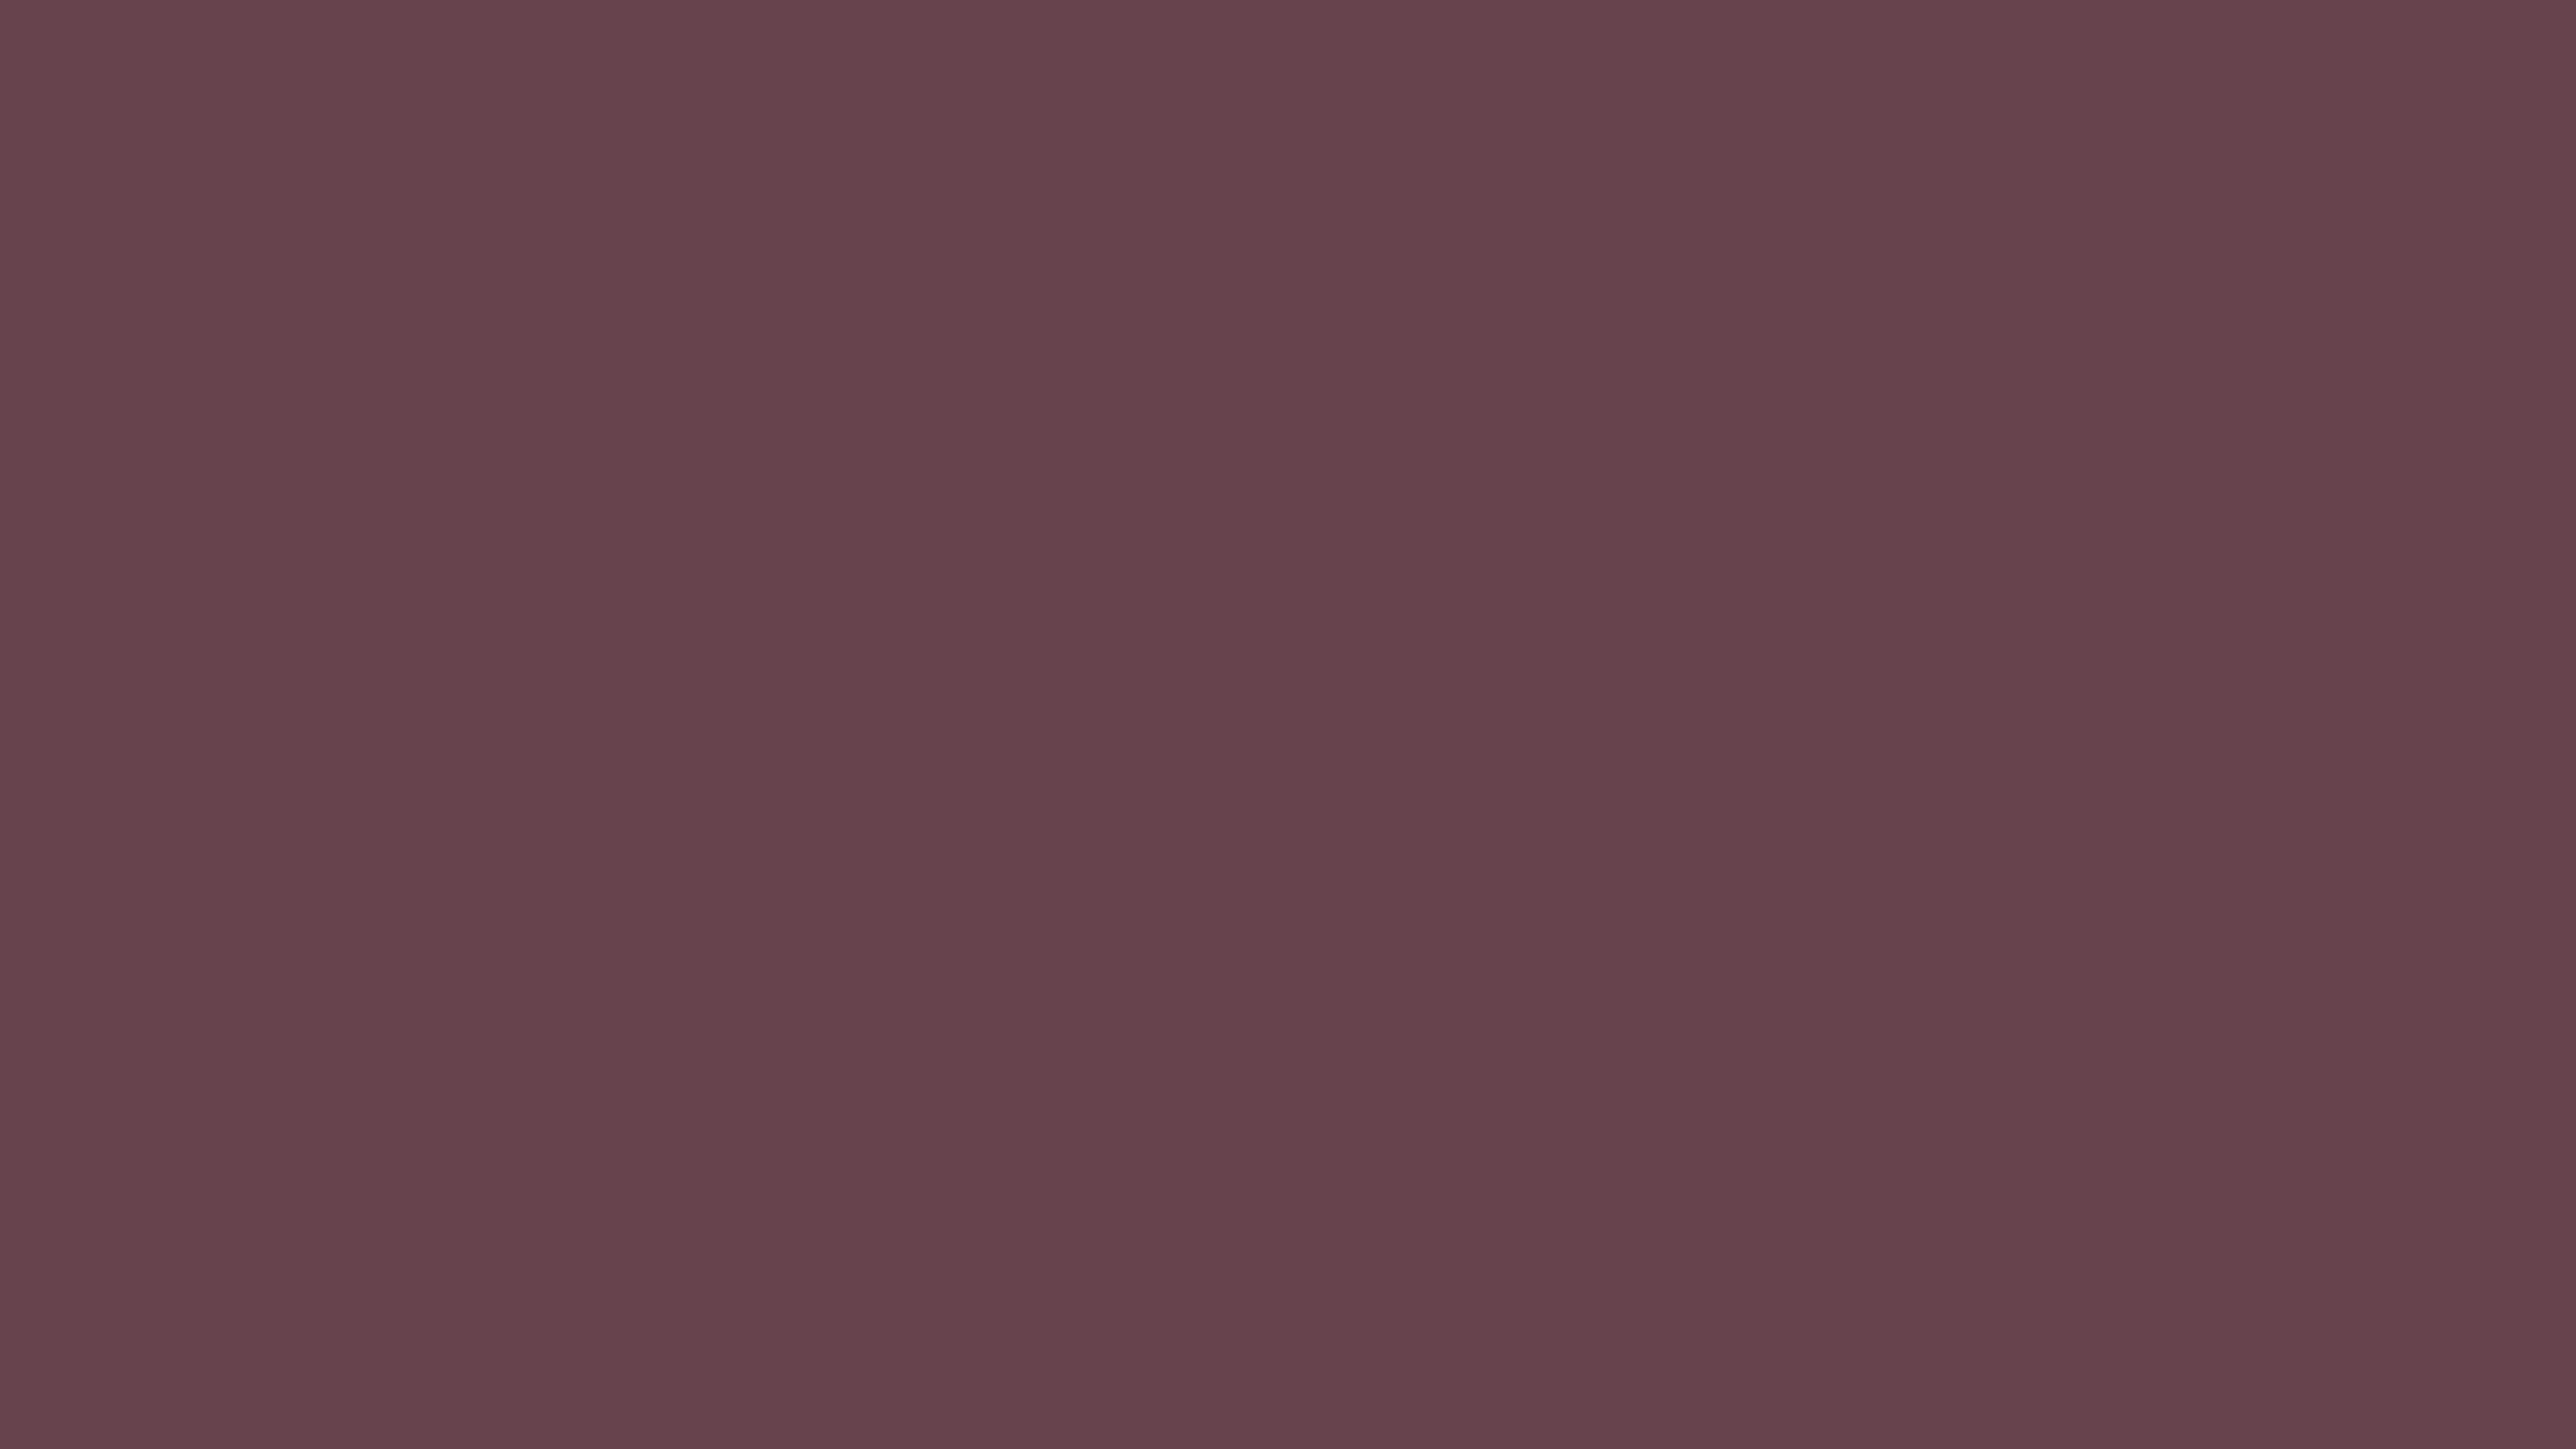 4096x2304 Deep Tuscan Red Solid Color Background